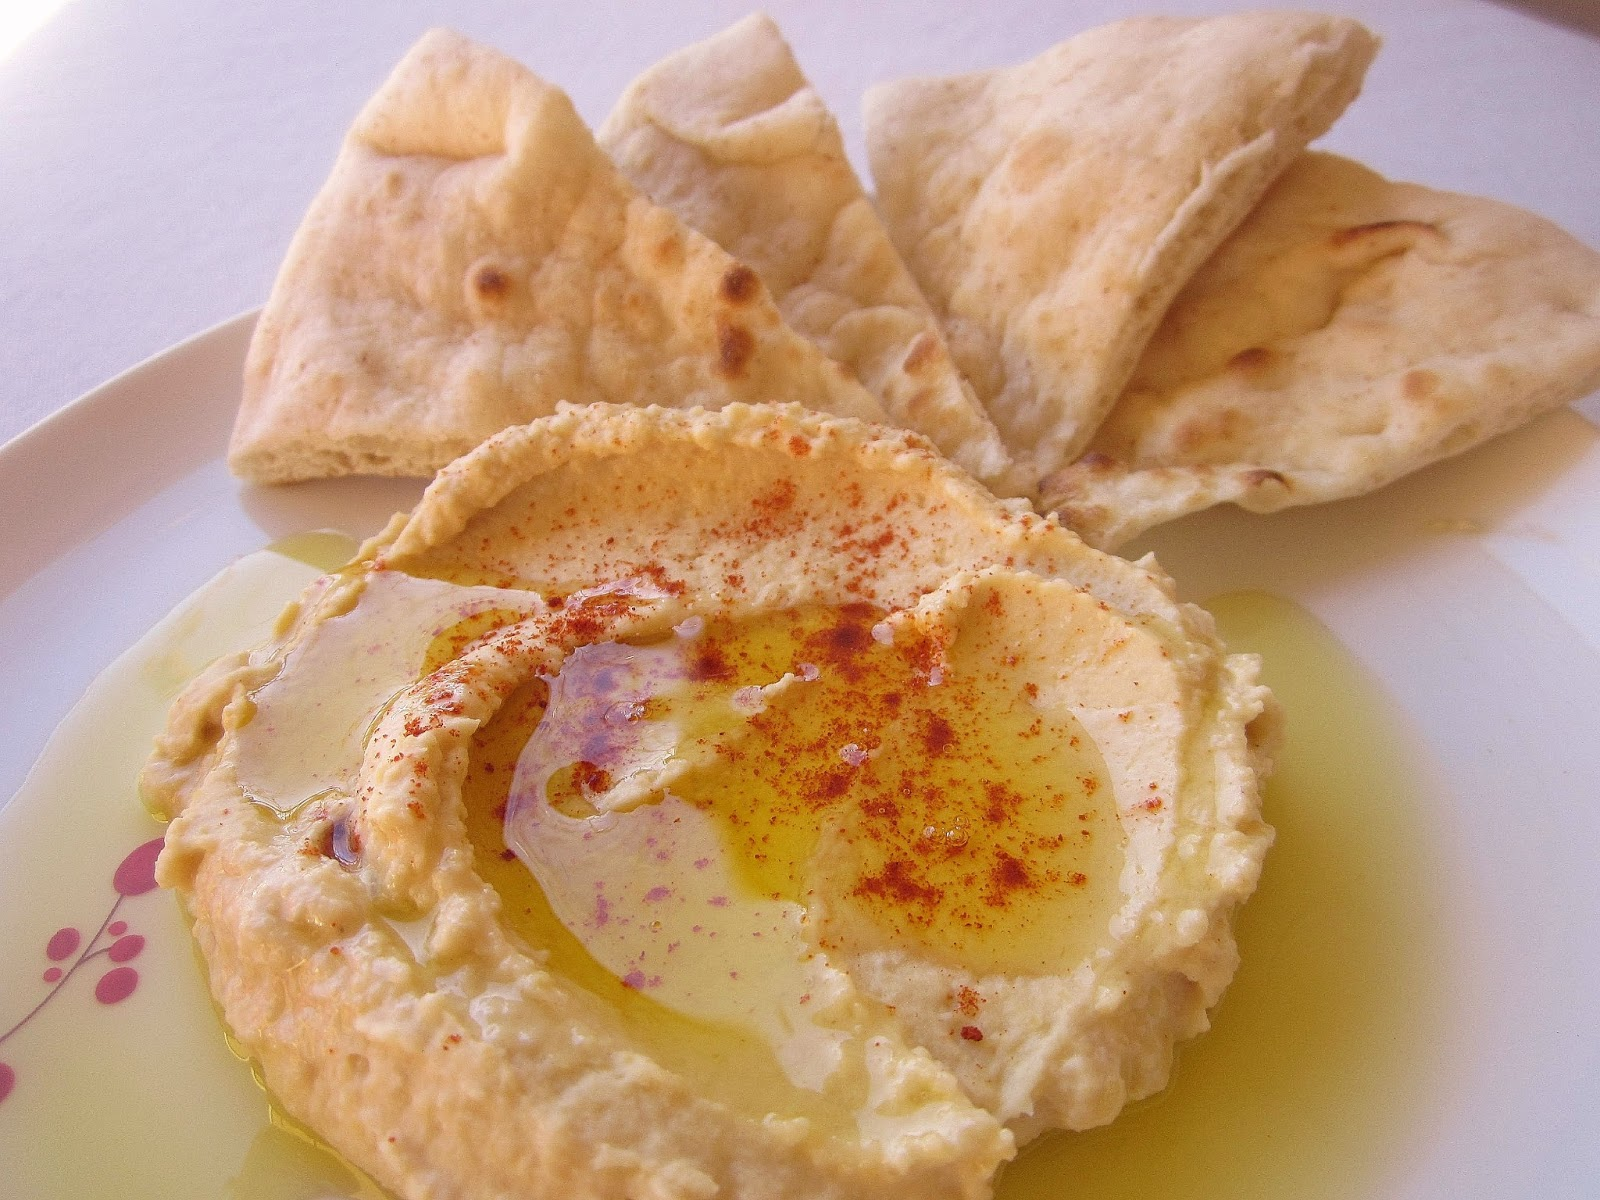 Dimples & Delights: Heavenly Homemade Hummus